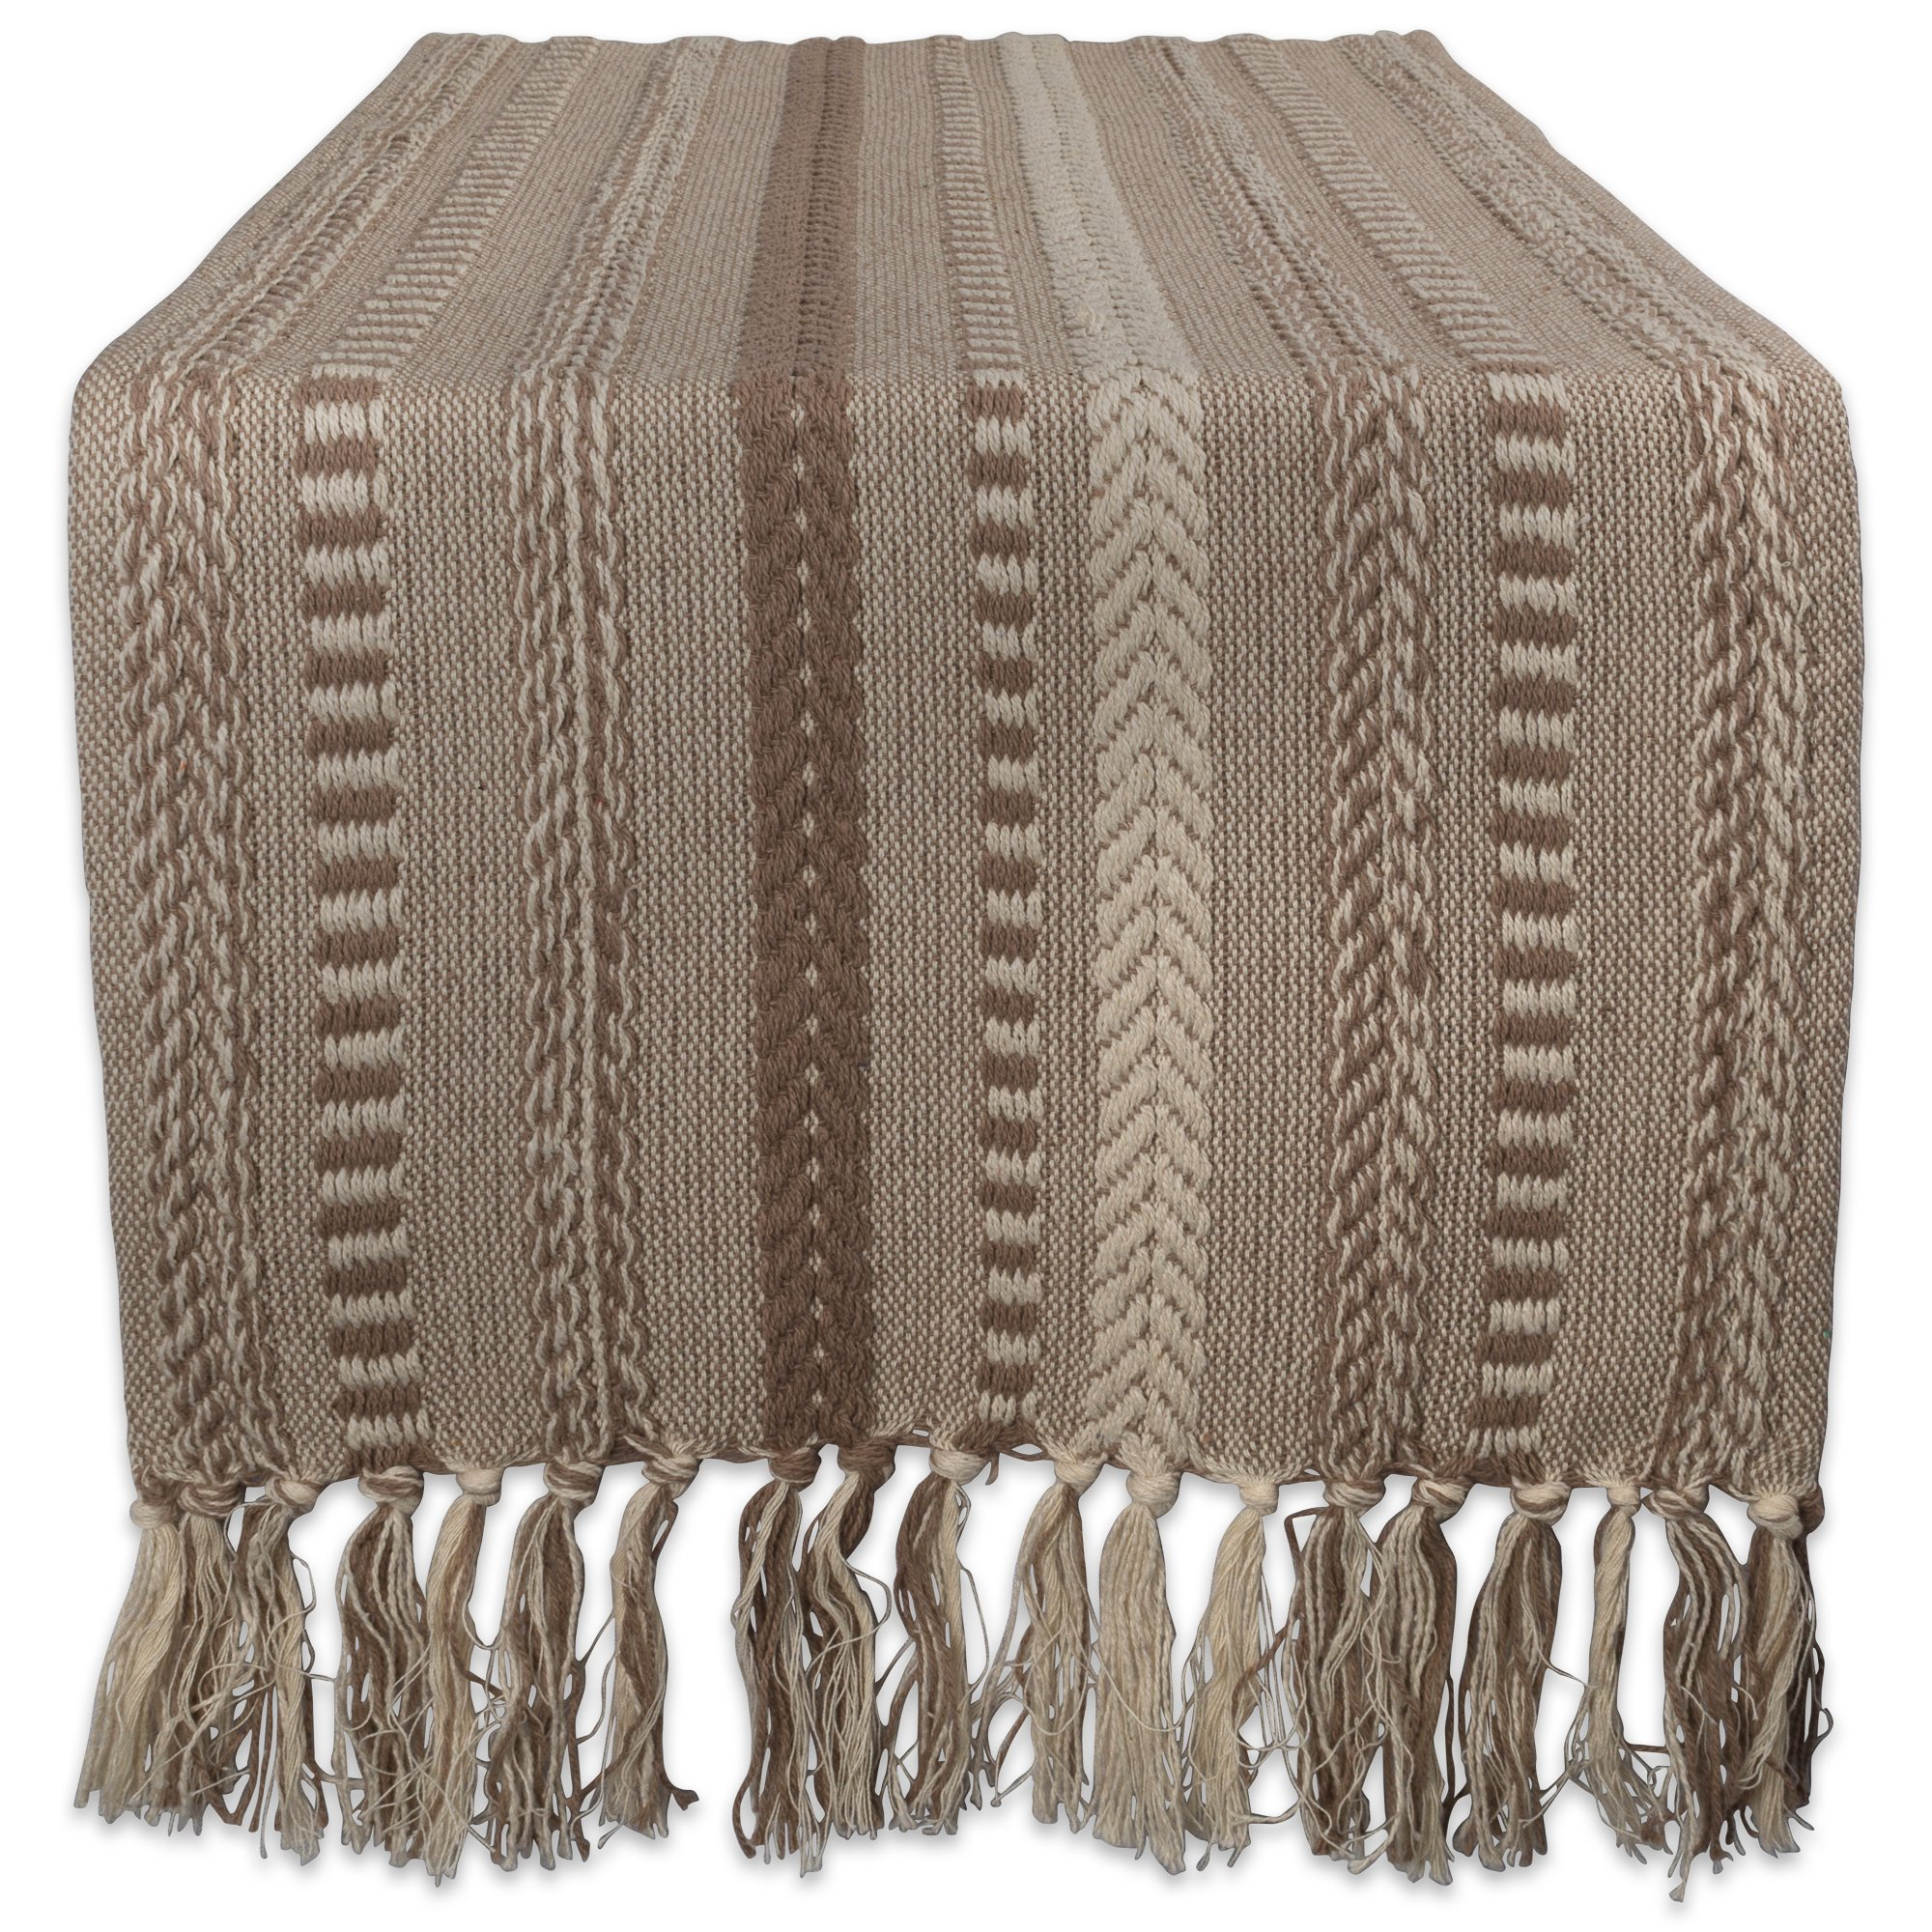 DII 15x72 Braided Cotton Table Runner, Stone Taupe - Perfect for Spring, Fall Holidays, Parties and Everyday Use